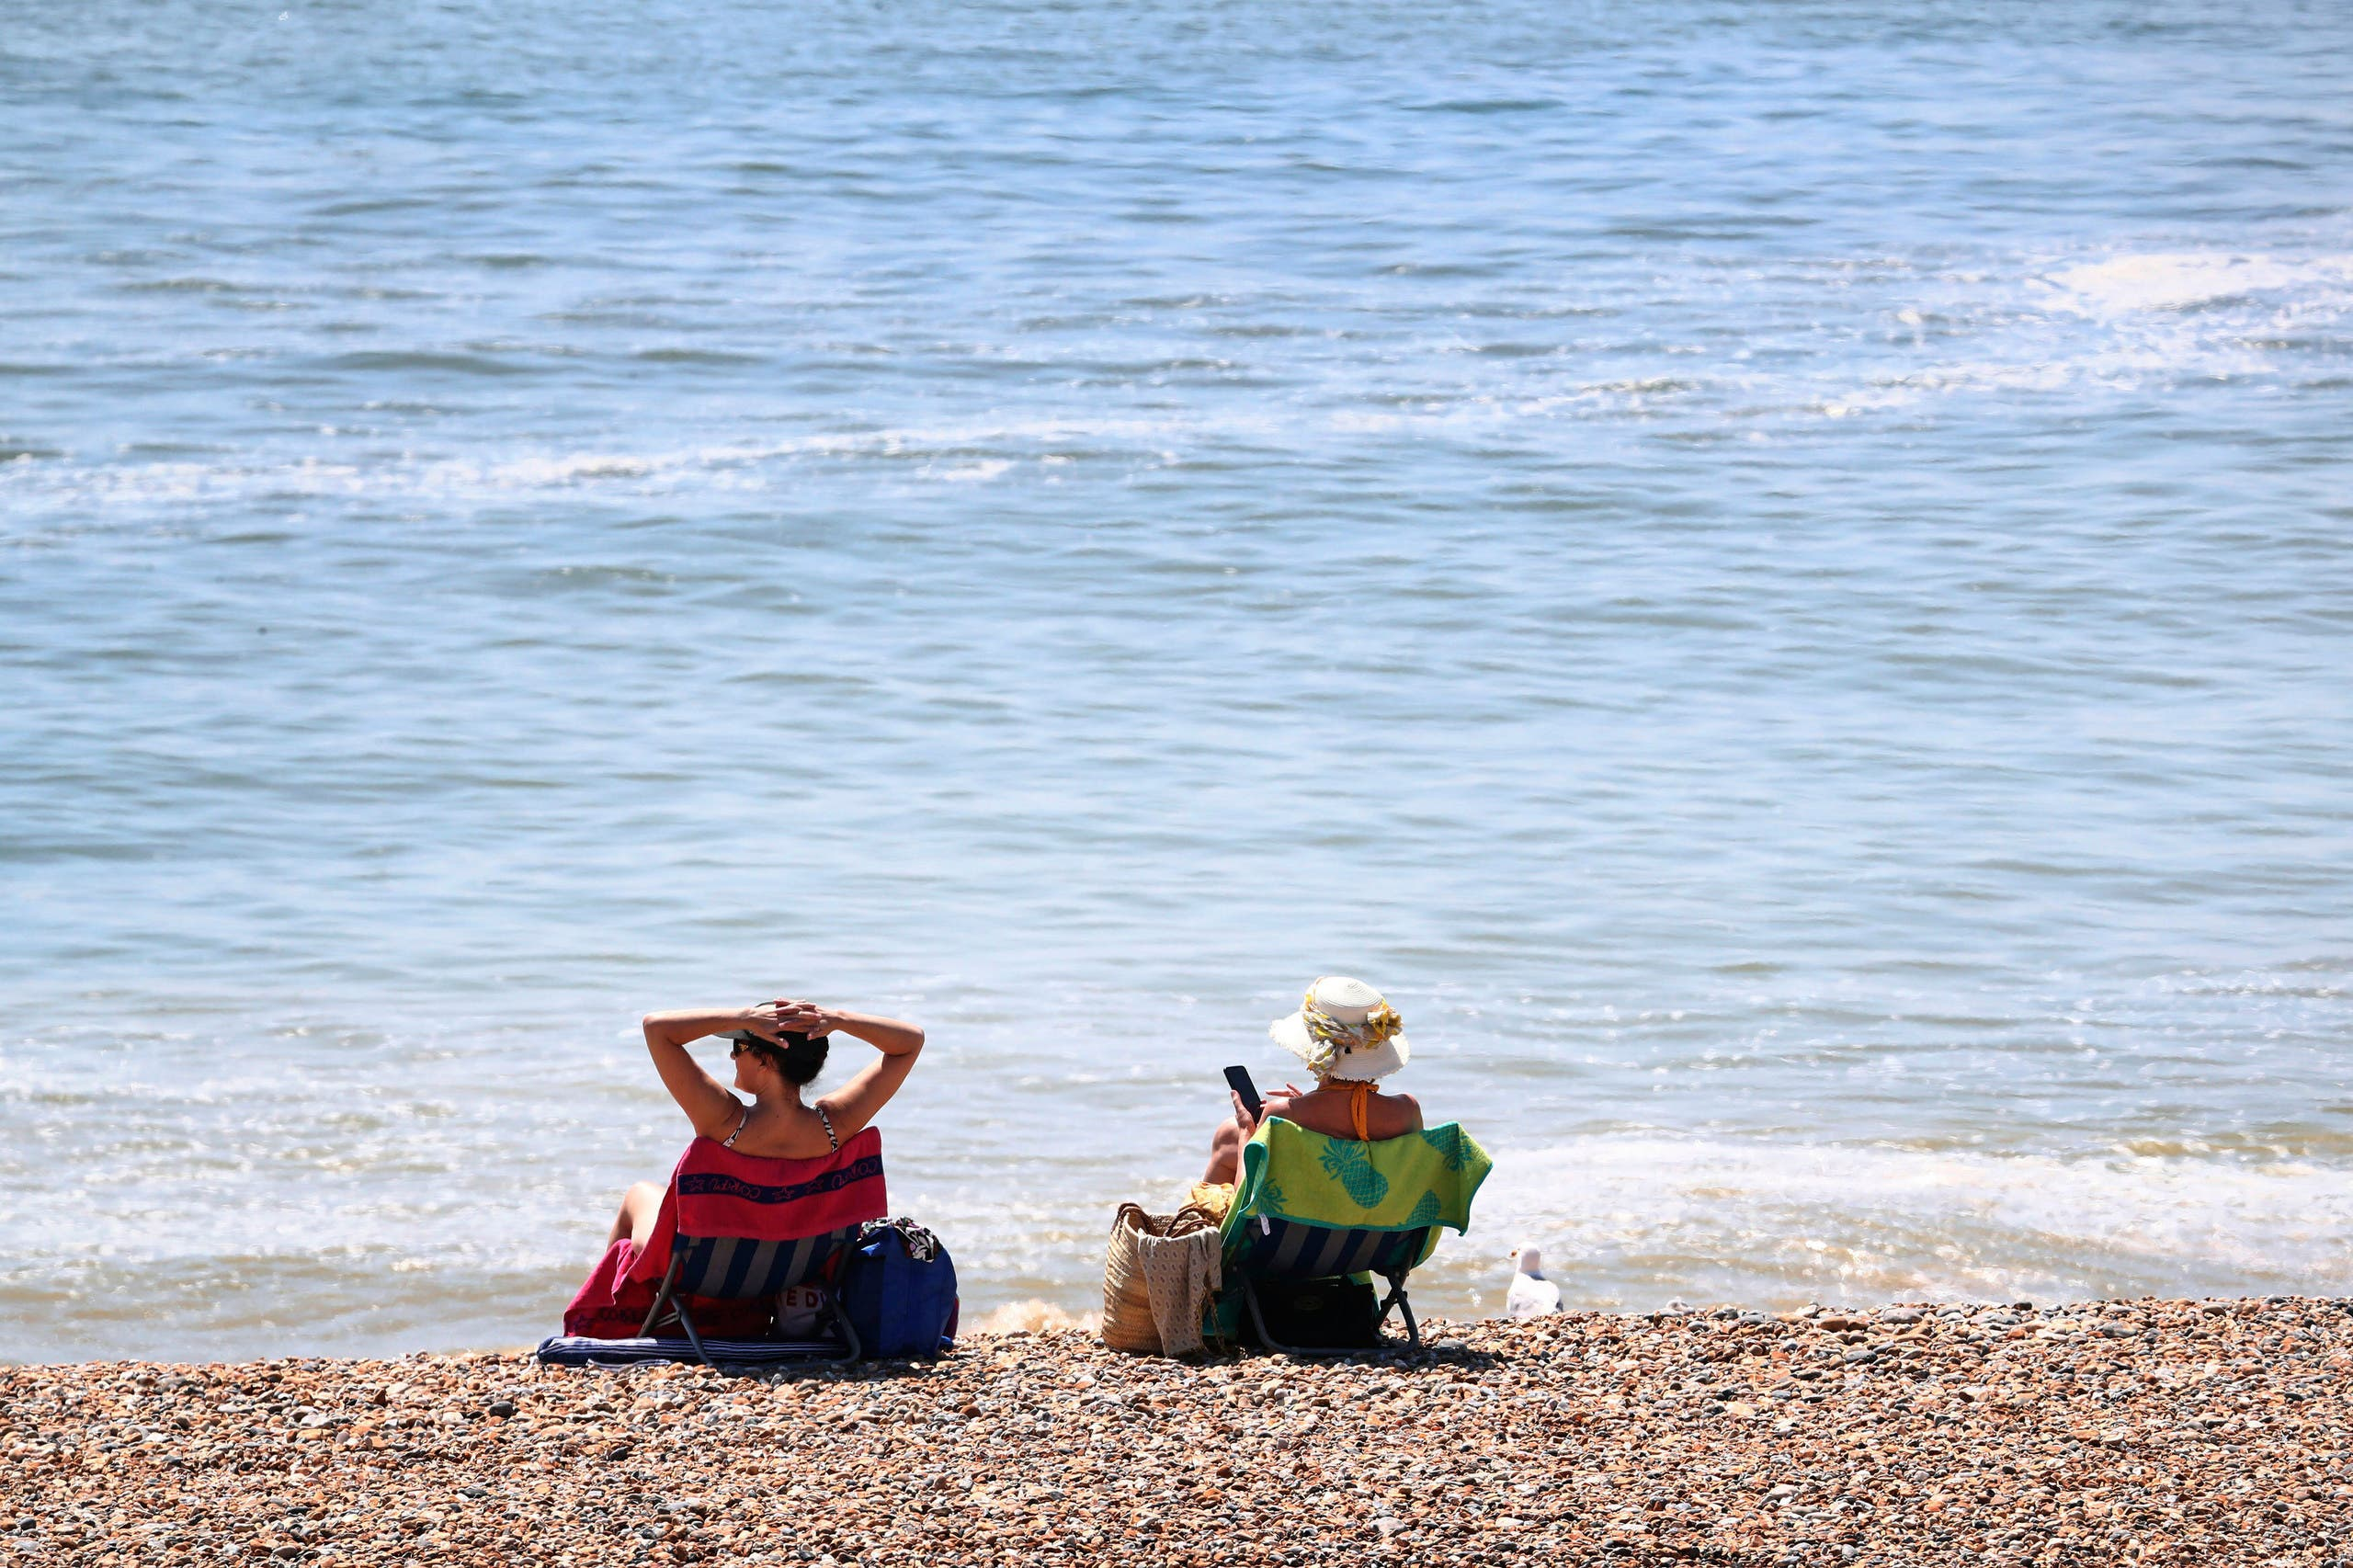 Women enjoy the good weather on the beach as lockdown measures due to the coronavirus outbreak were eased, in Brighton, England, on Thursday May 21, 2020. (AP)